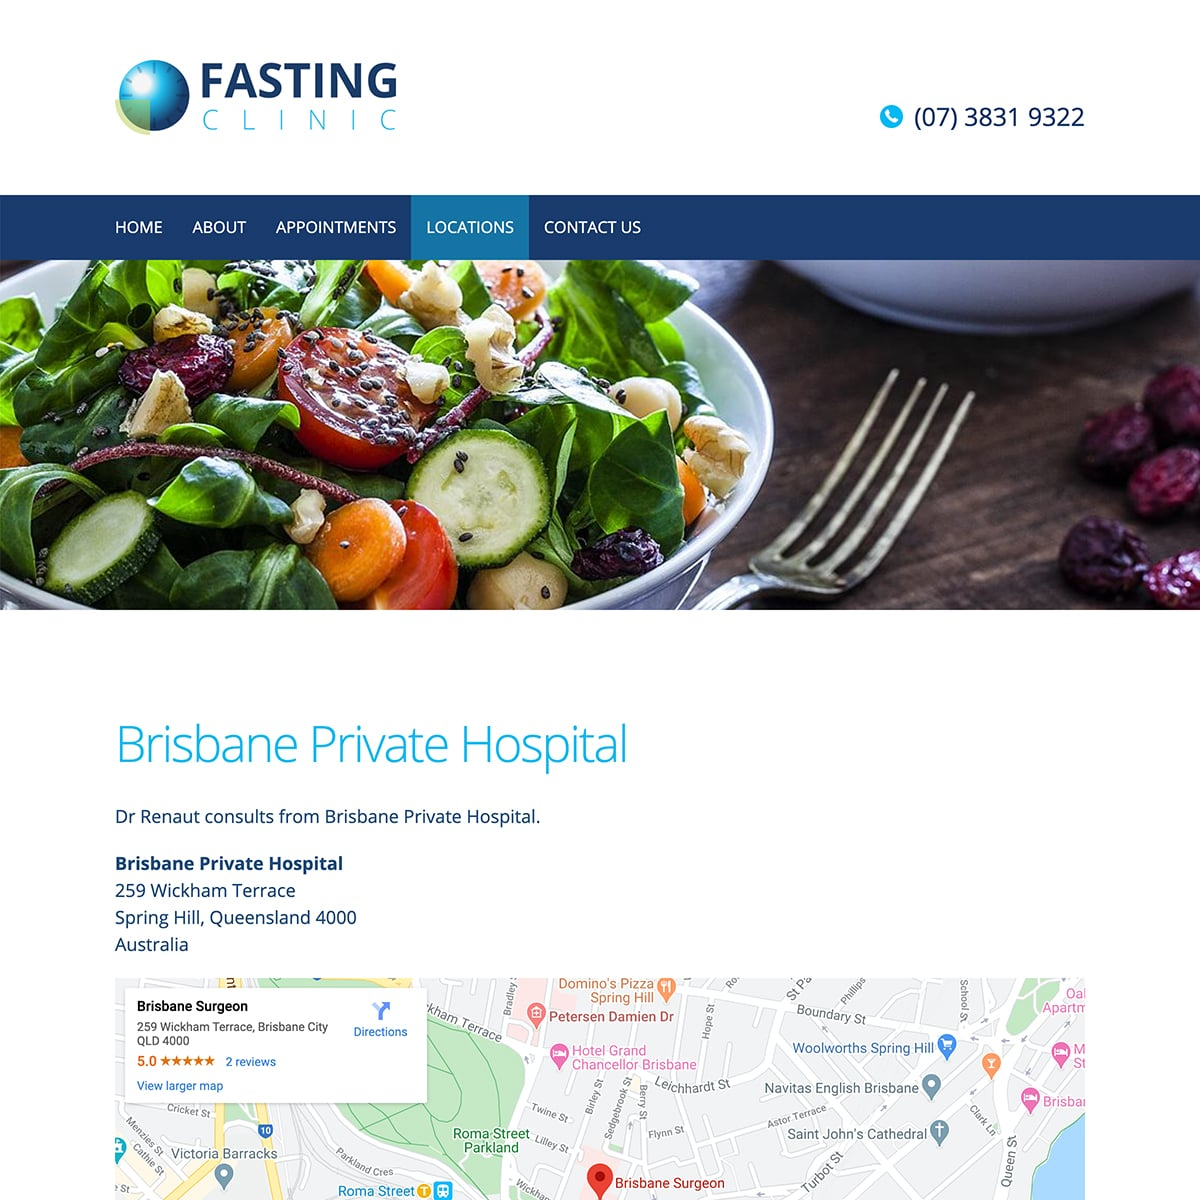 Fasting Clinic - Locations